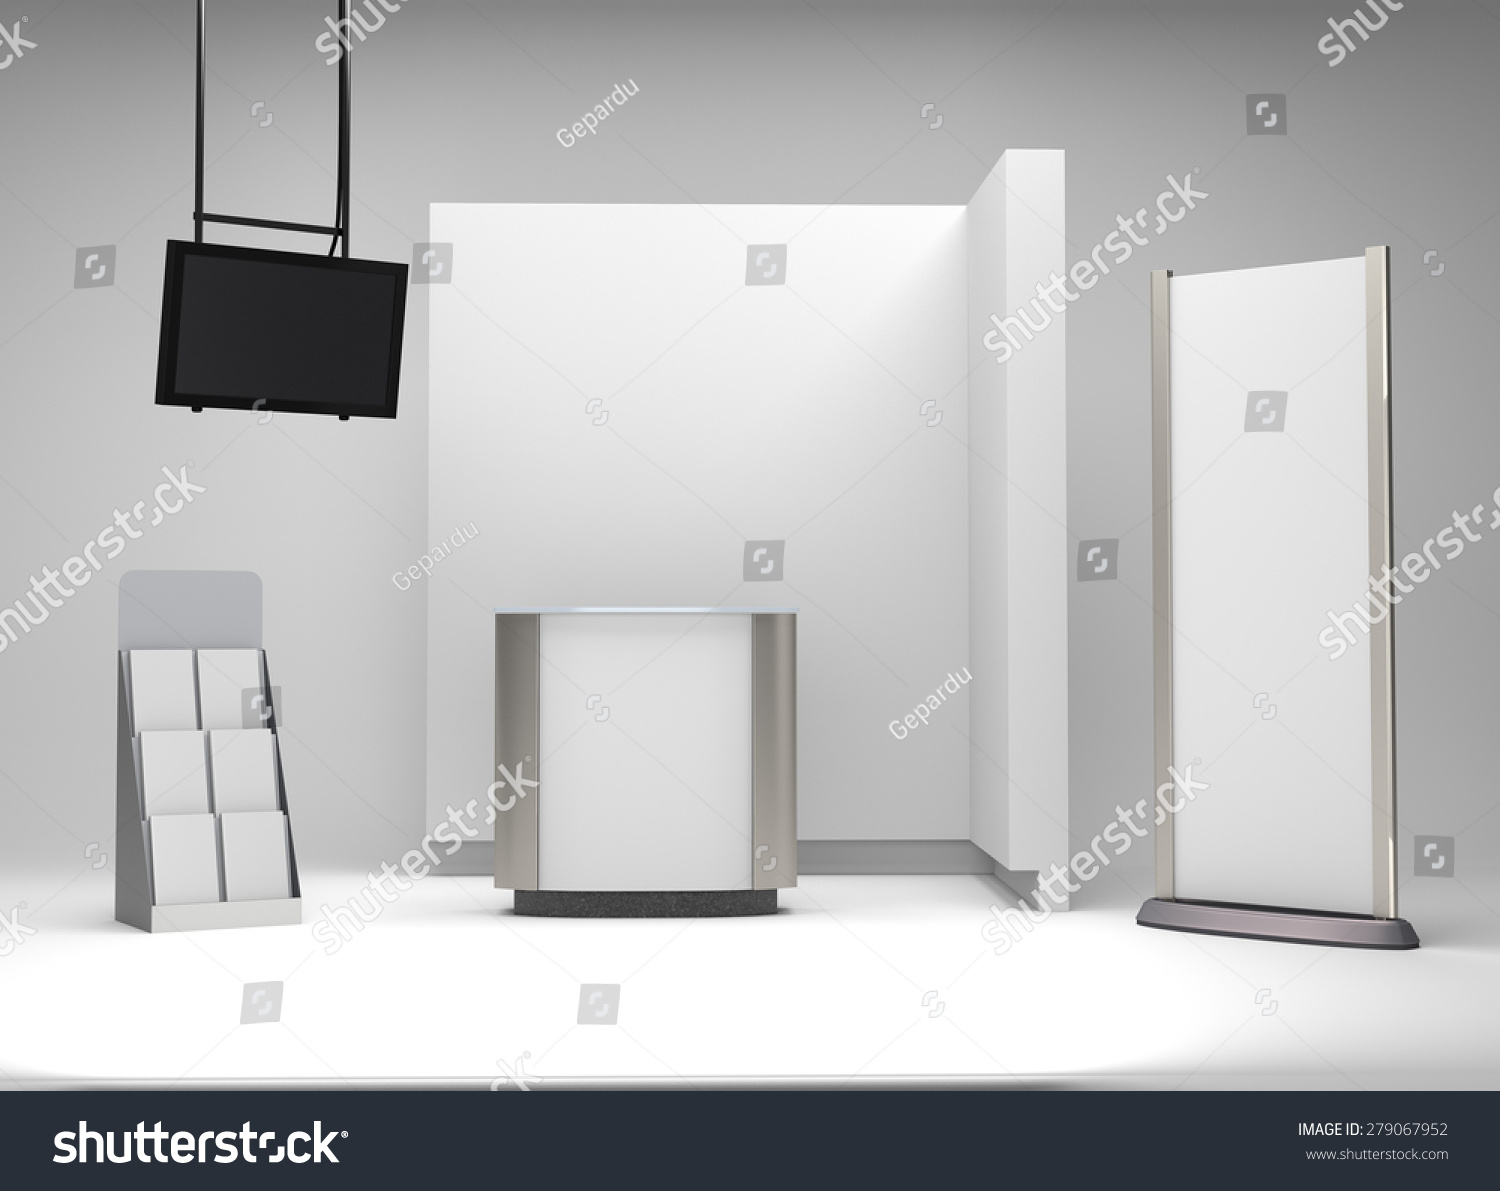 Exhibition Stand Mockup Free Download : Exhibition stand design mock up free download polarview